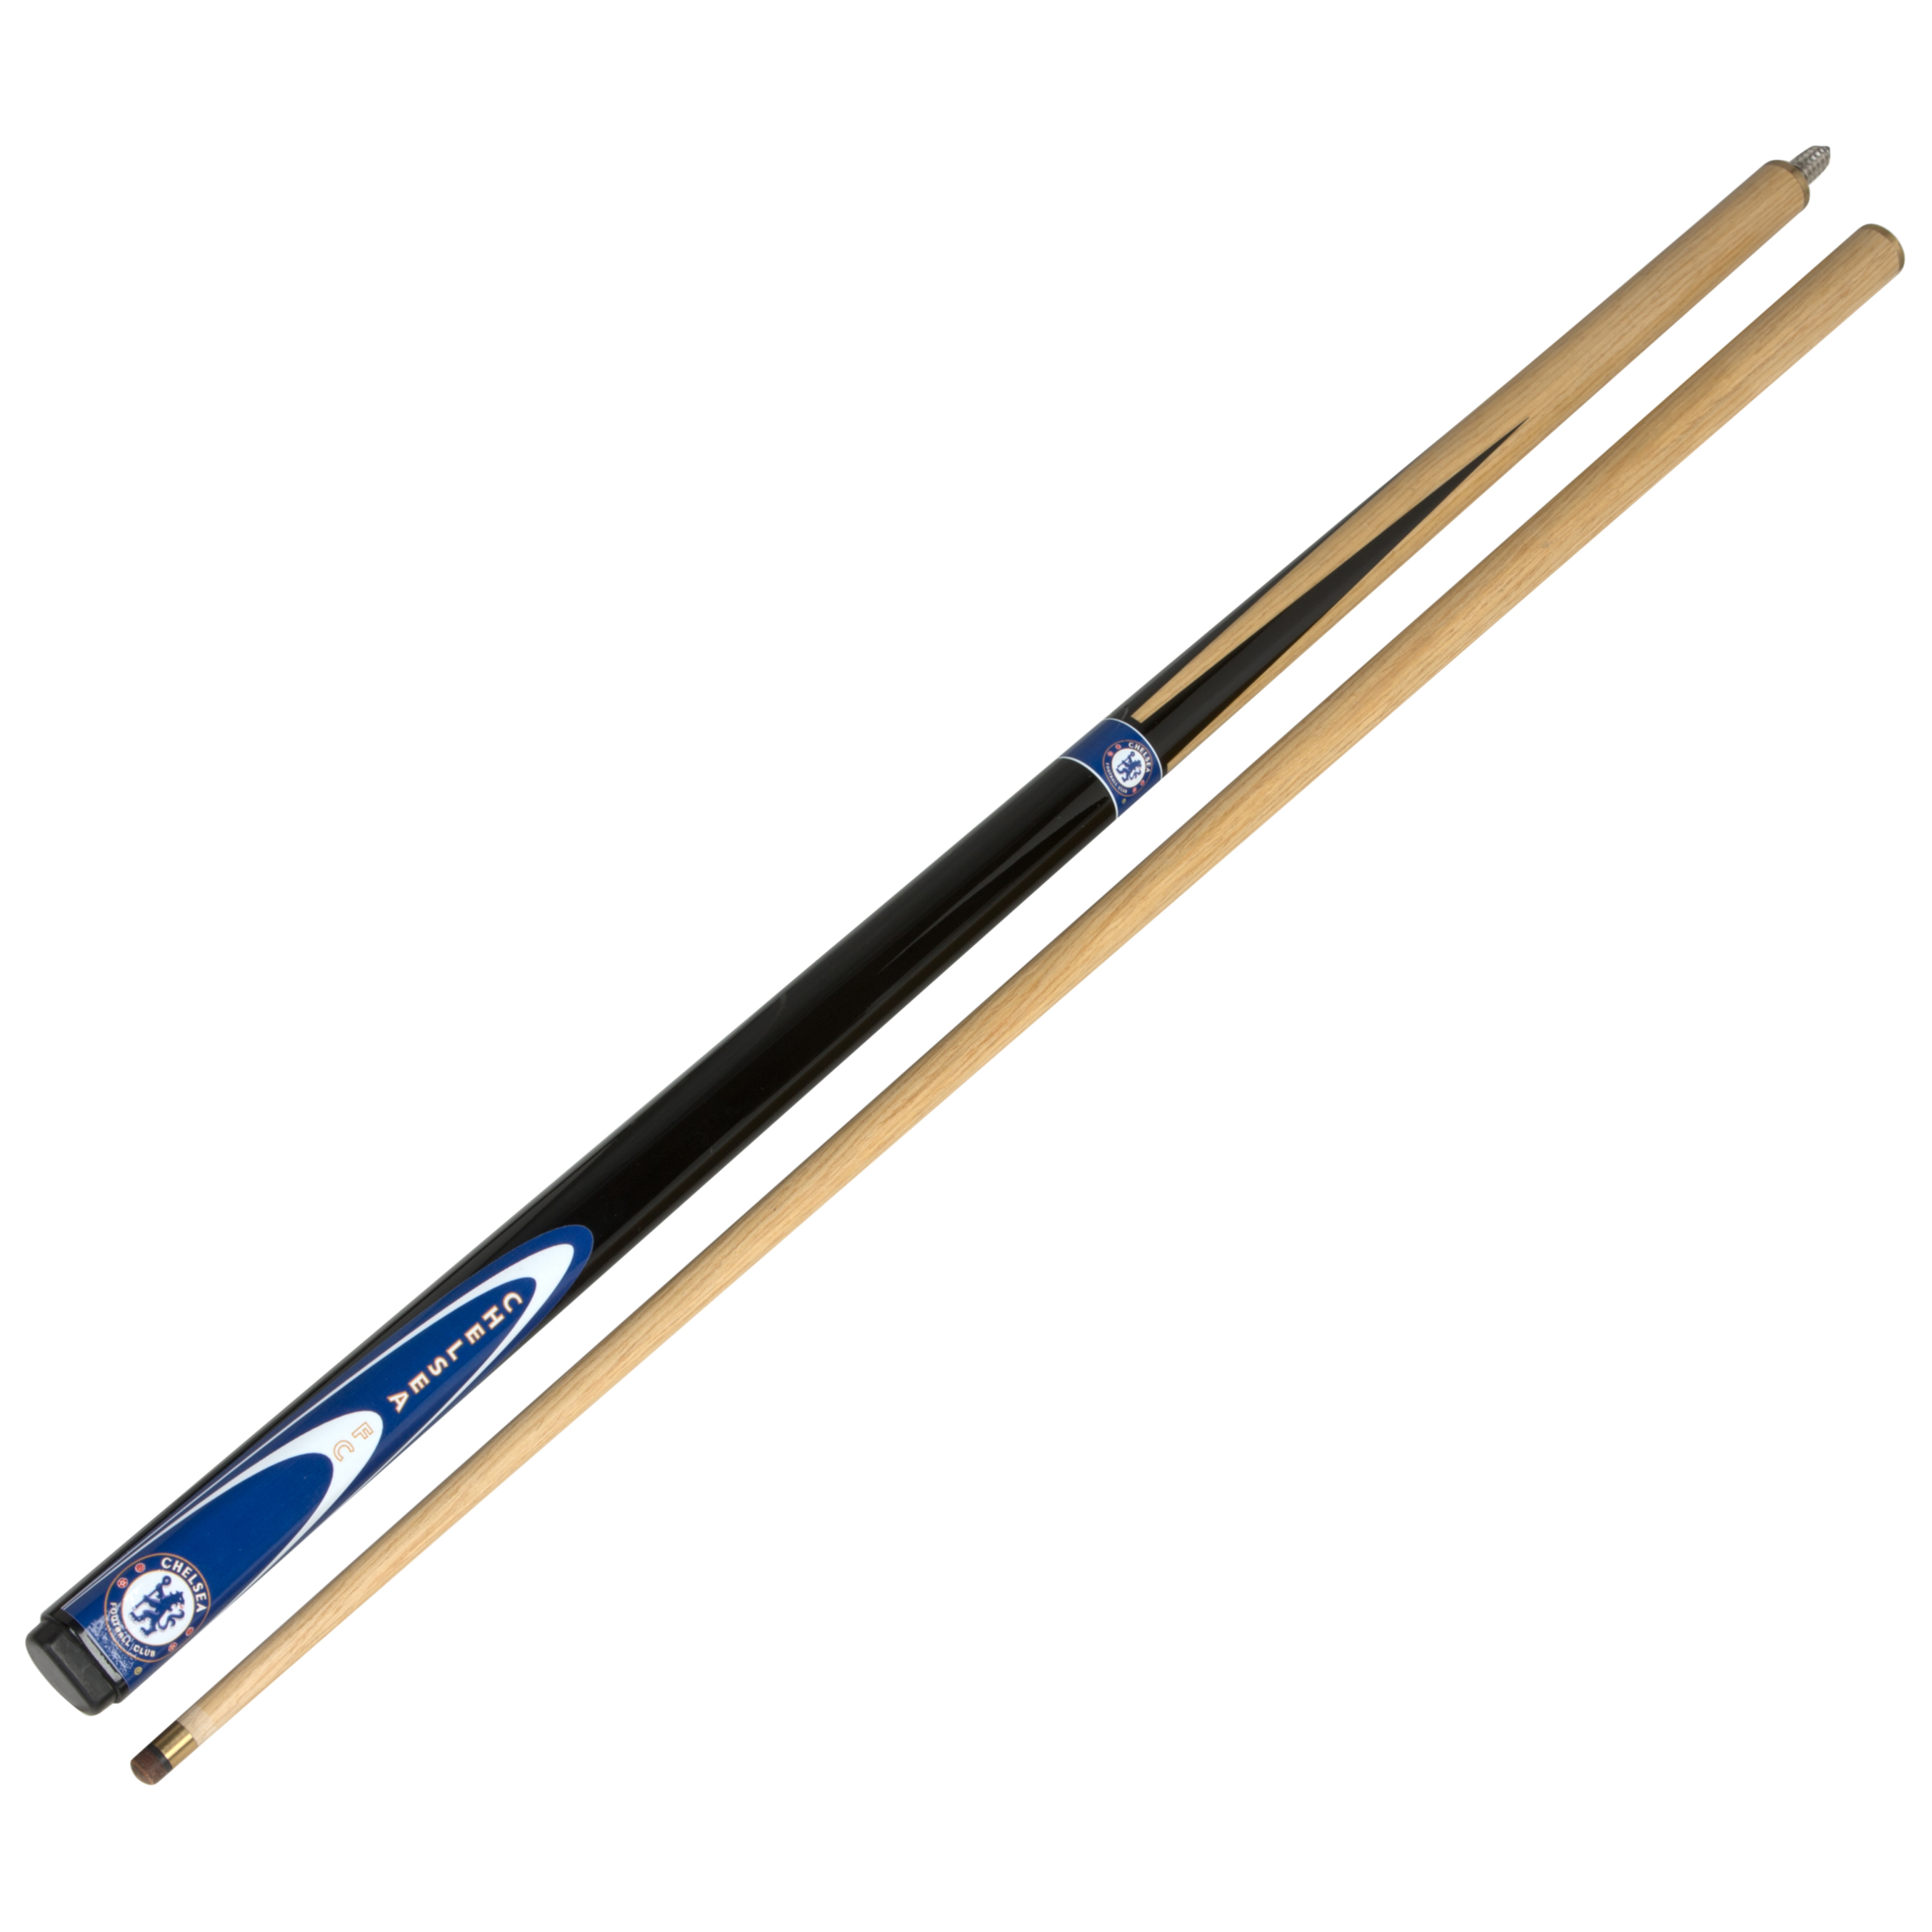 Chelsea Snooker - UK Pool Cue and Case